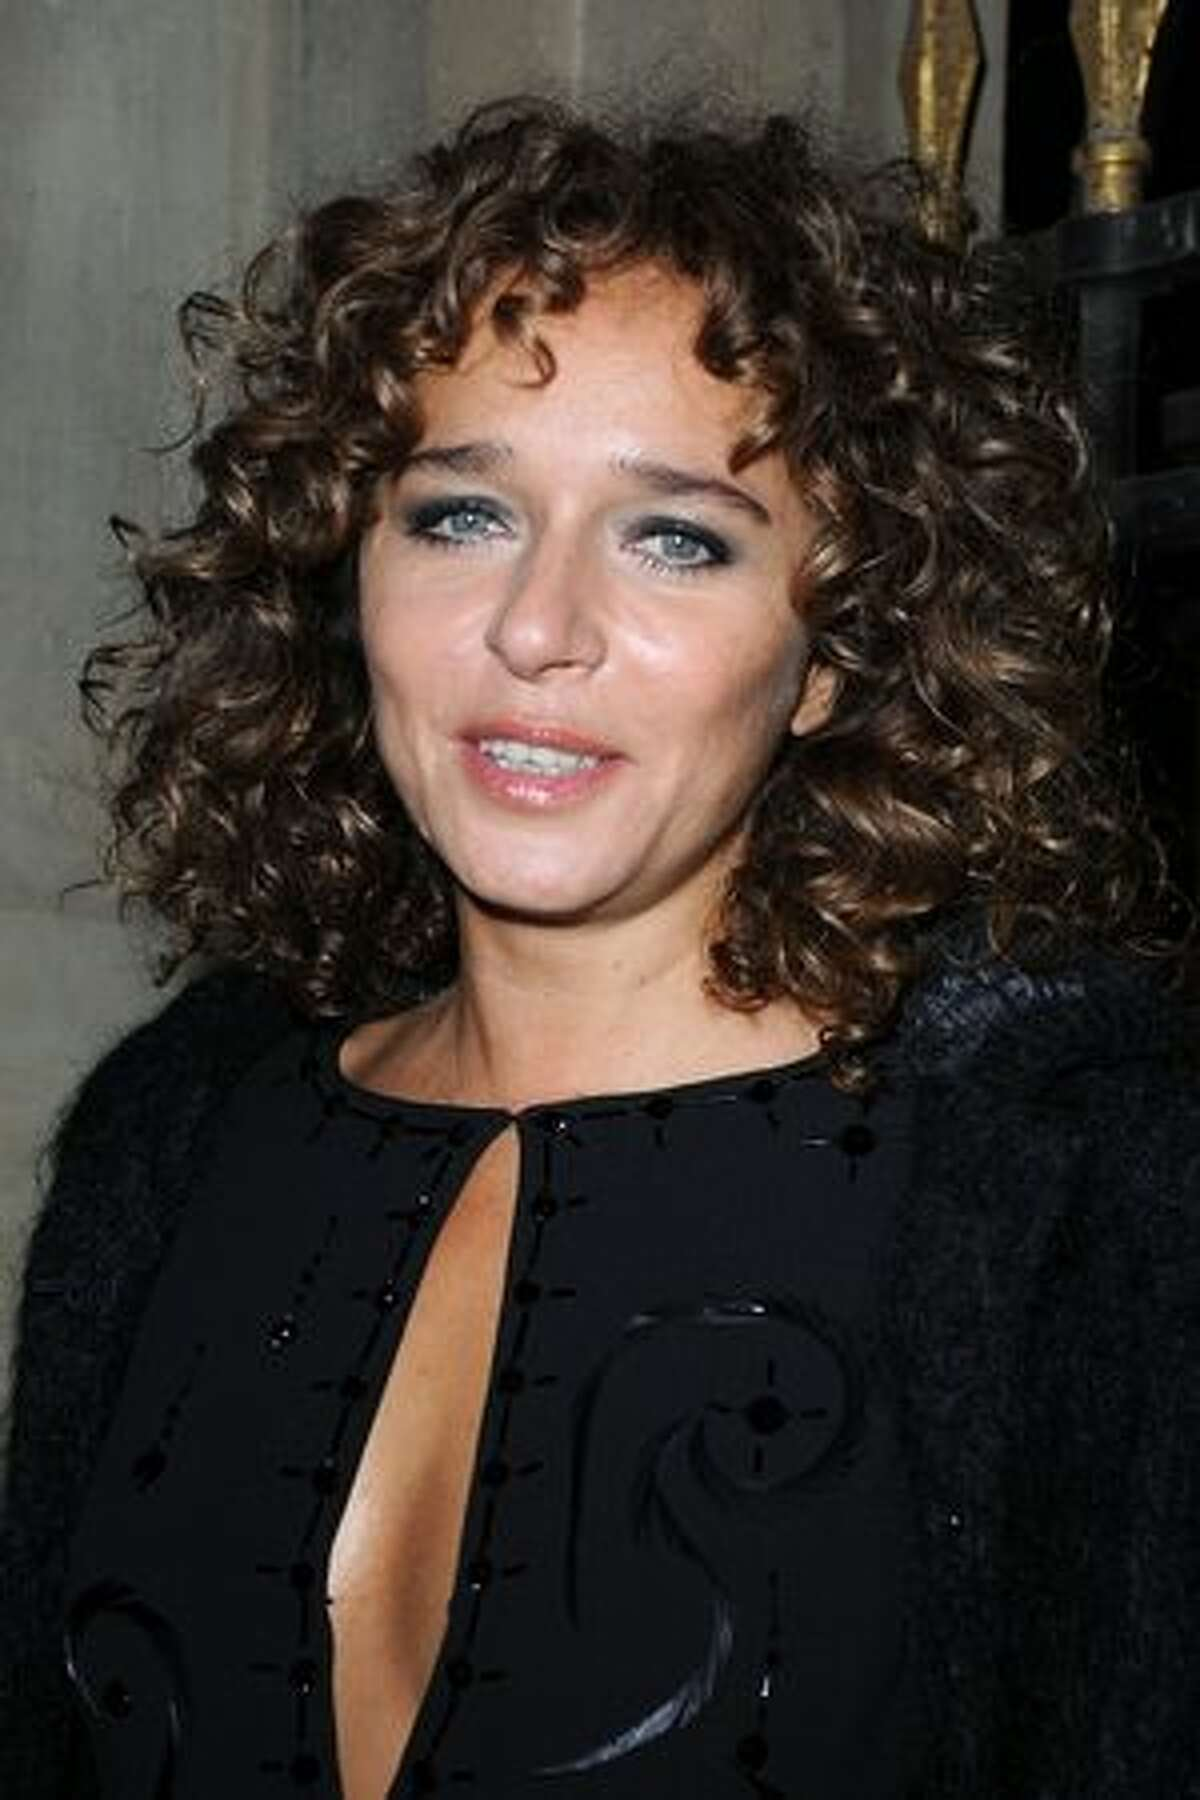 Valeria Golino attends the Miu Miu Ready to Wear Spring/Summer 2011 show during Paris Fashion Week in Paris, France.